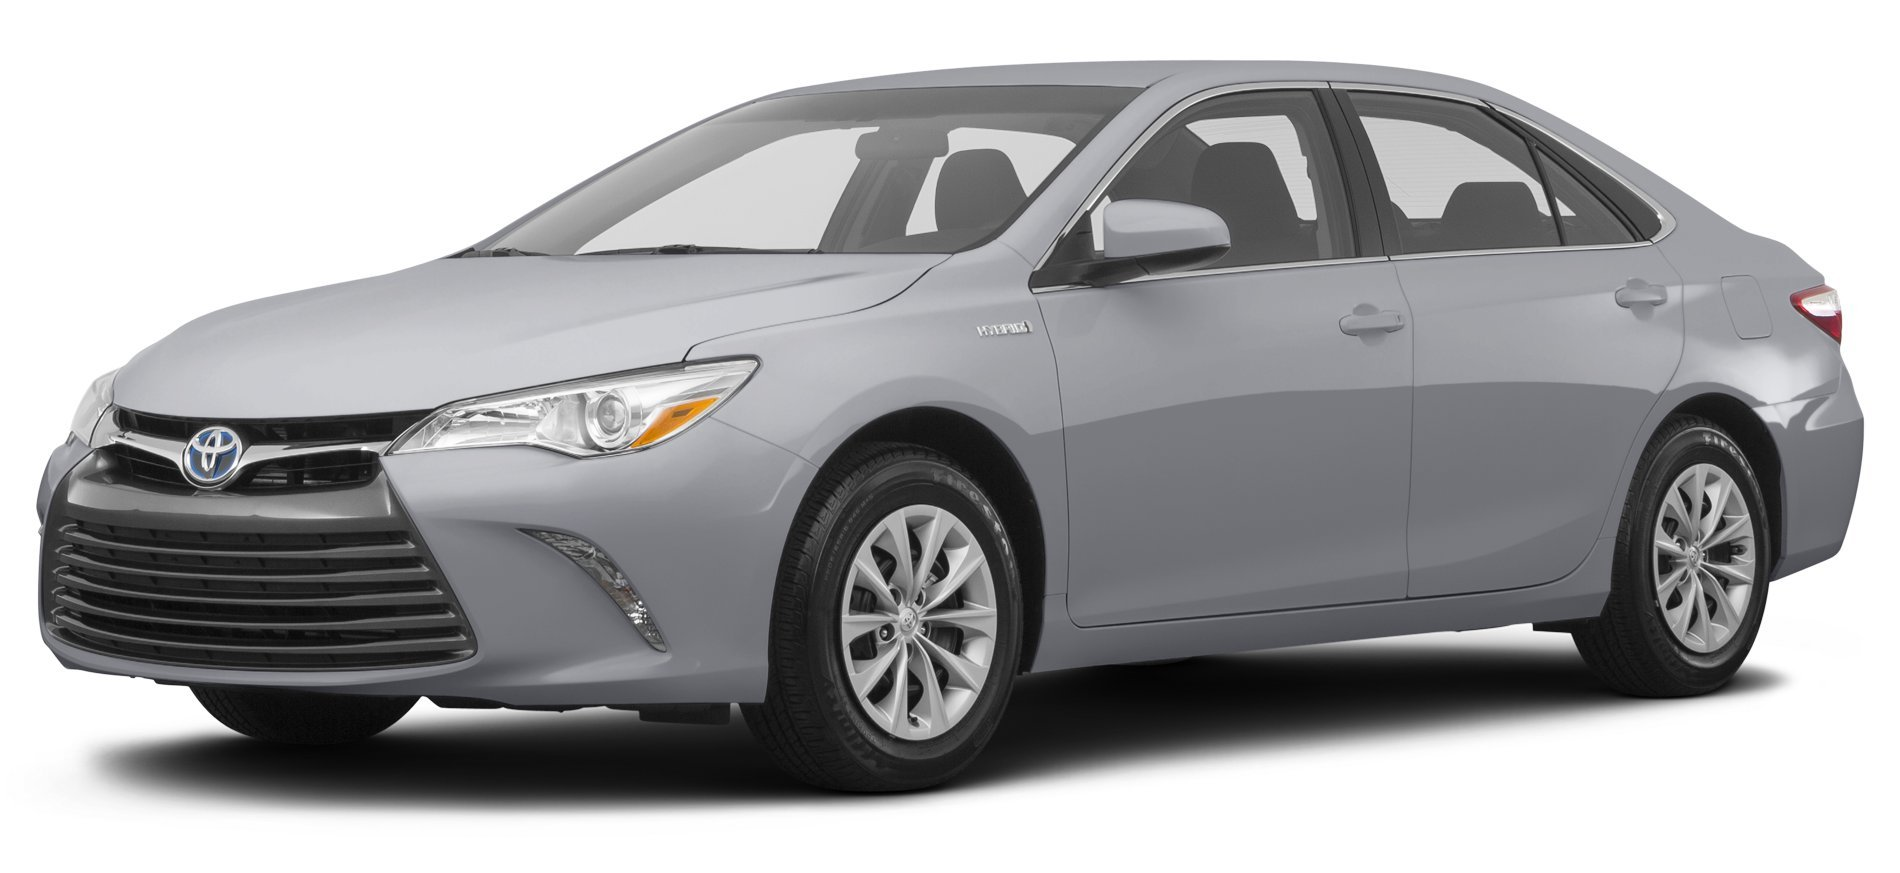 2017 toyota camry reviews images and specs vehicles. Black Bedroom Furniture Sets. Home Design Ideas